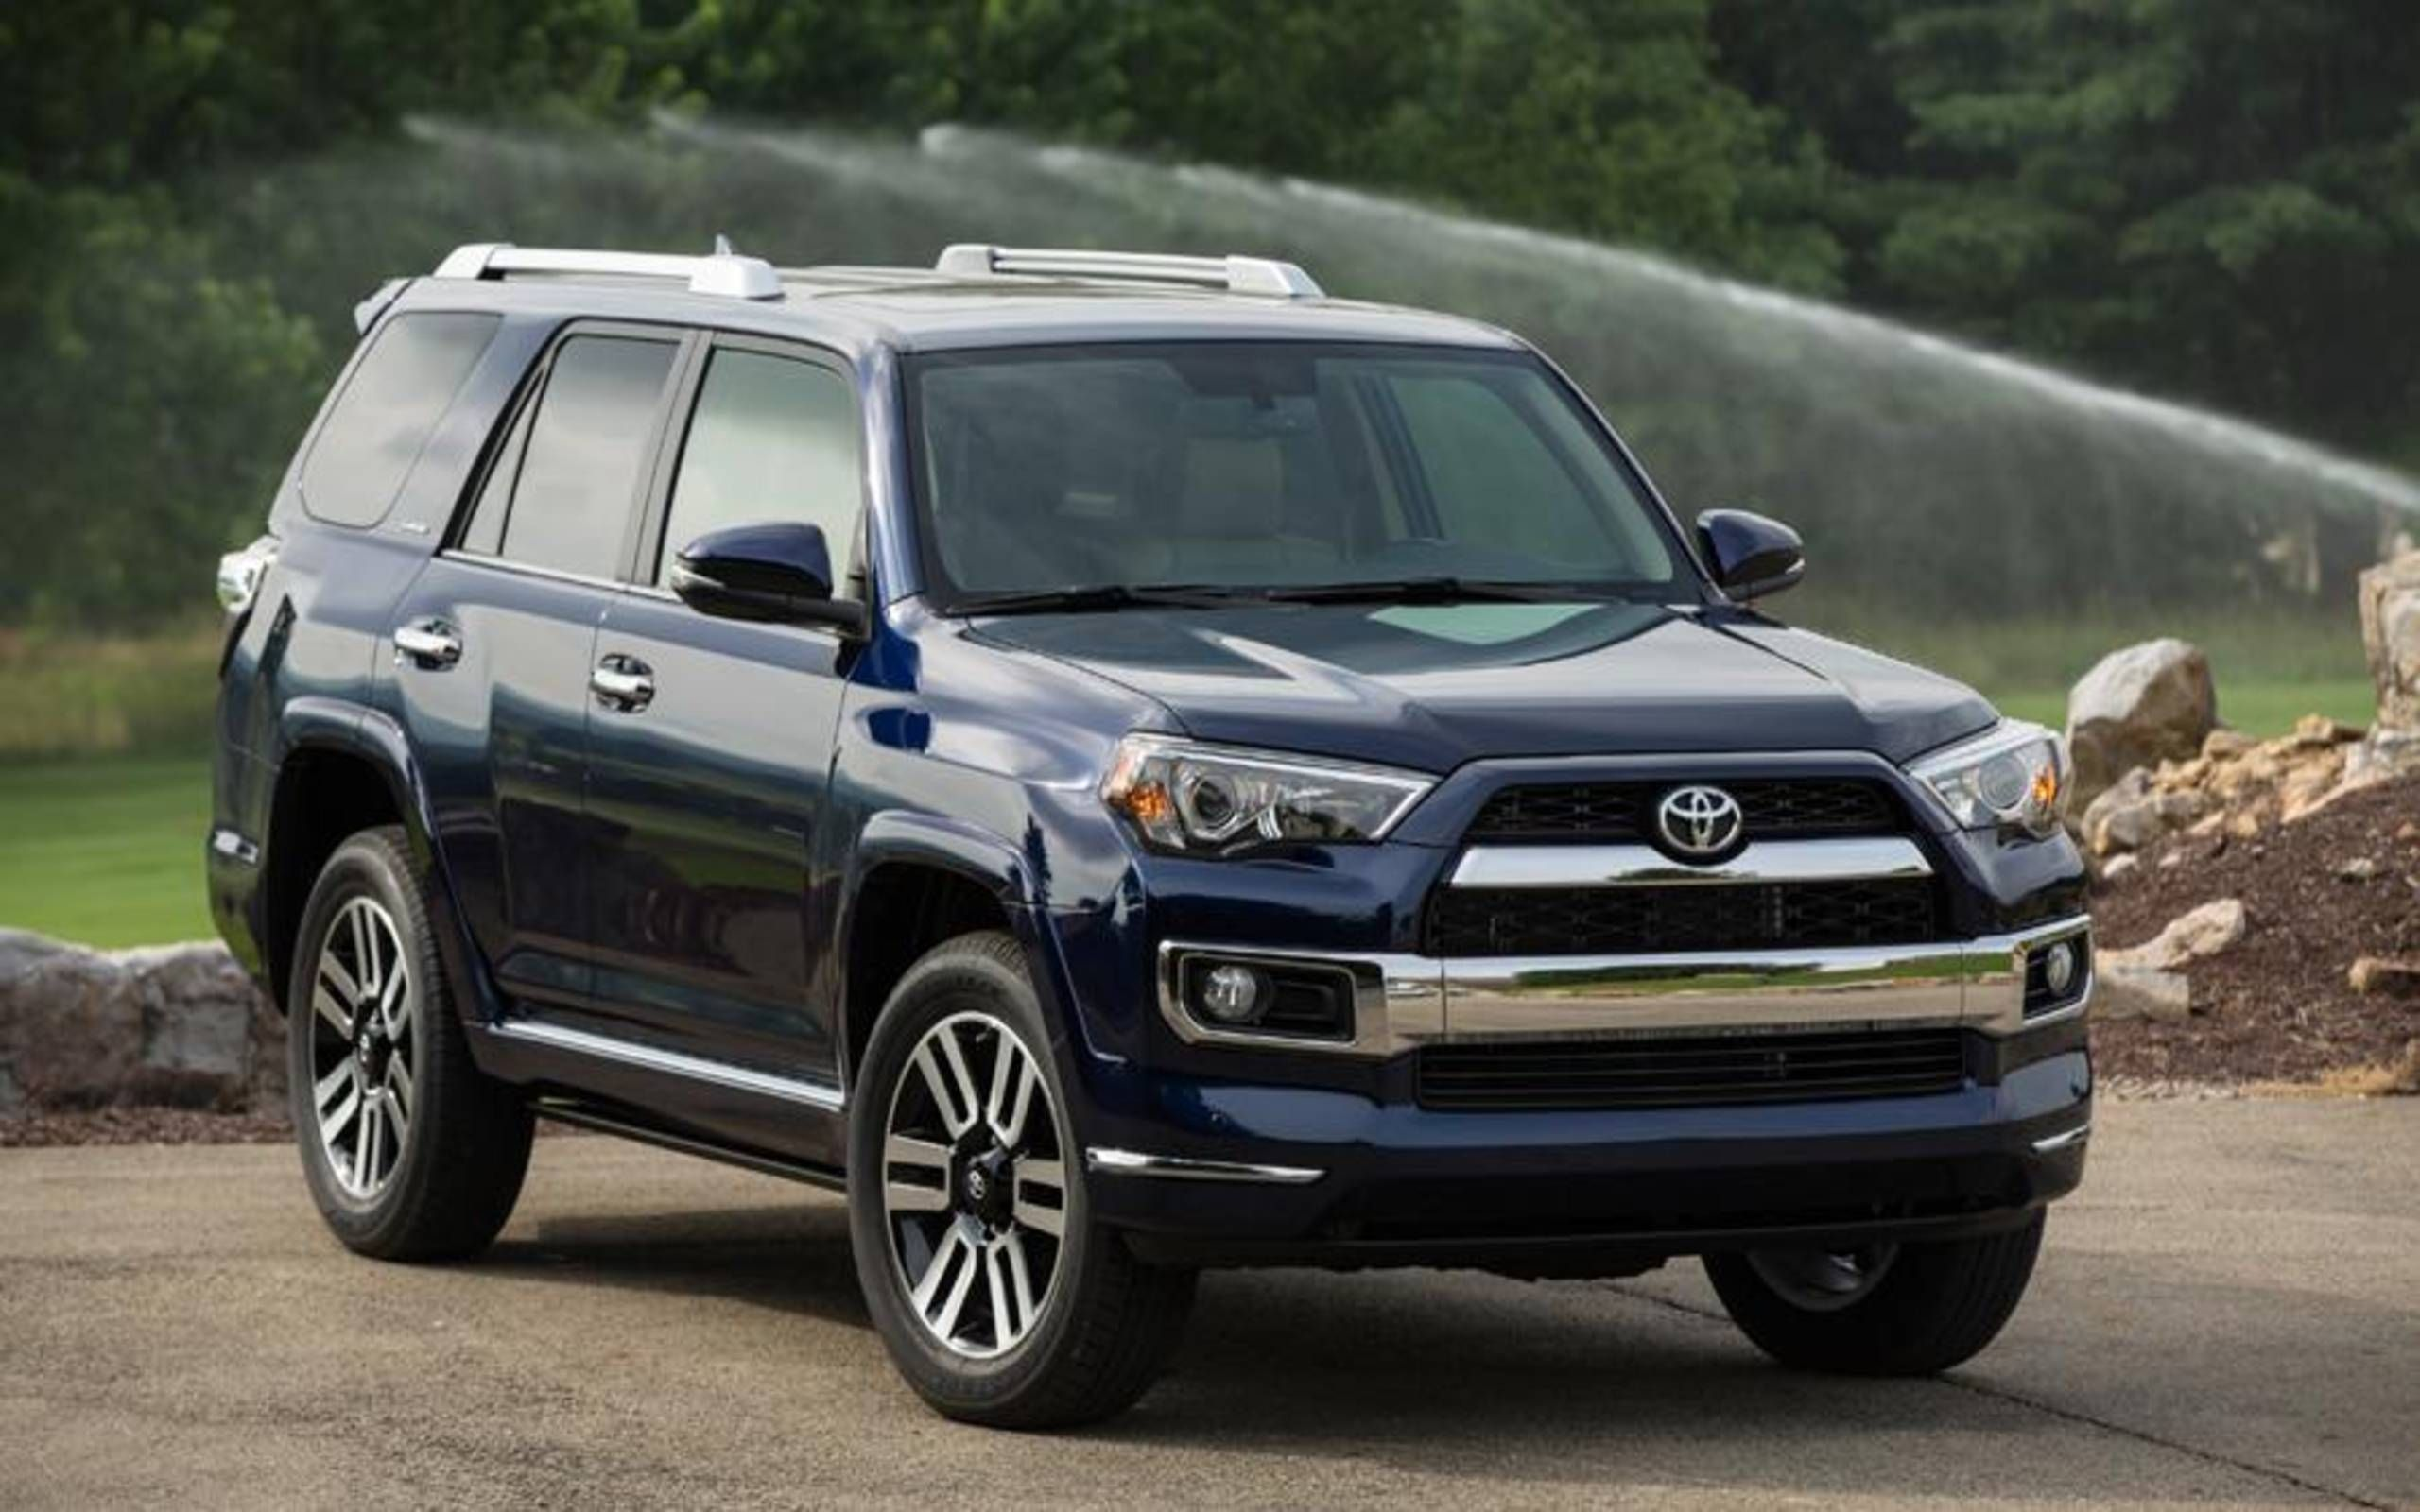 2014 toyota 4runner limited review notes 2014 toyota 4runner limited review notes